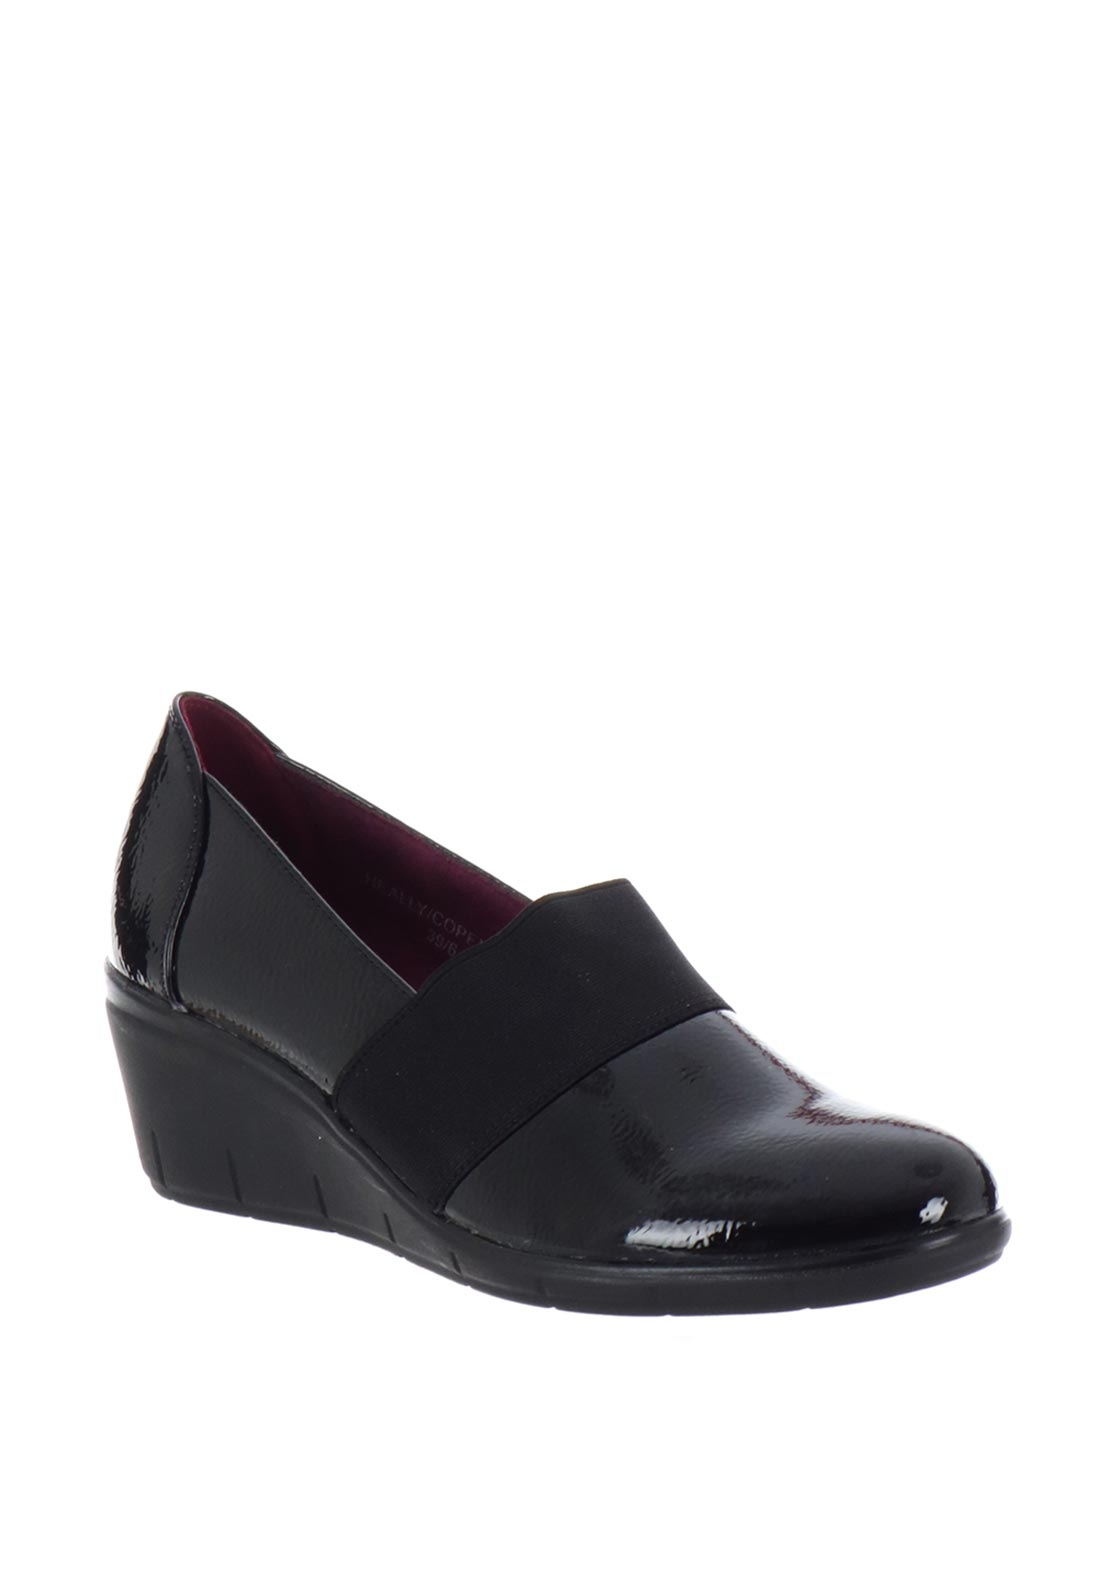 Zanni & Co. Heally Patent Comfort Shoes, Black